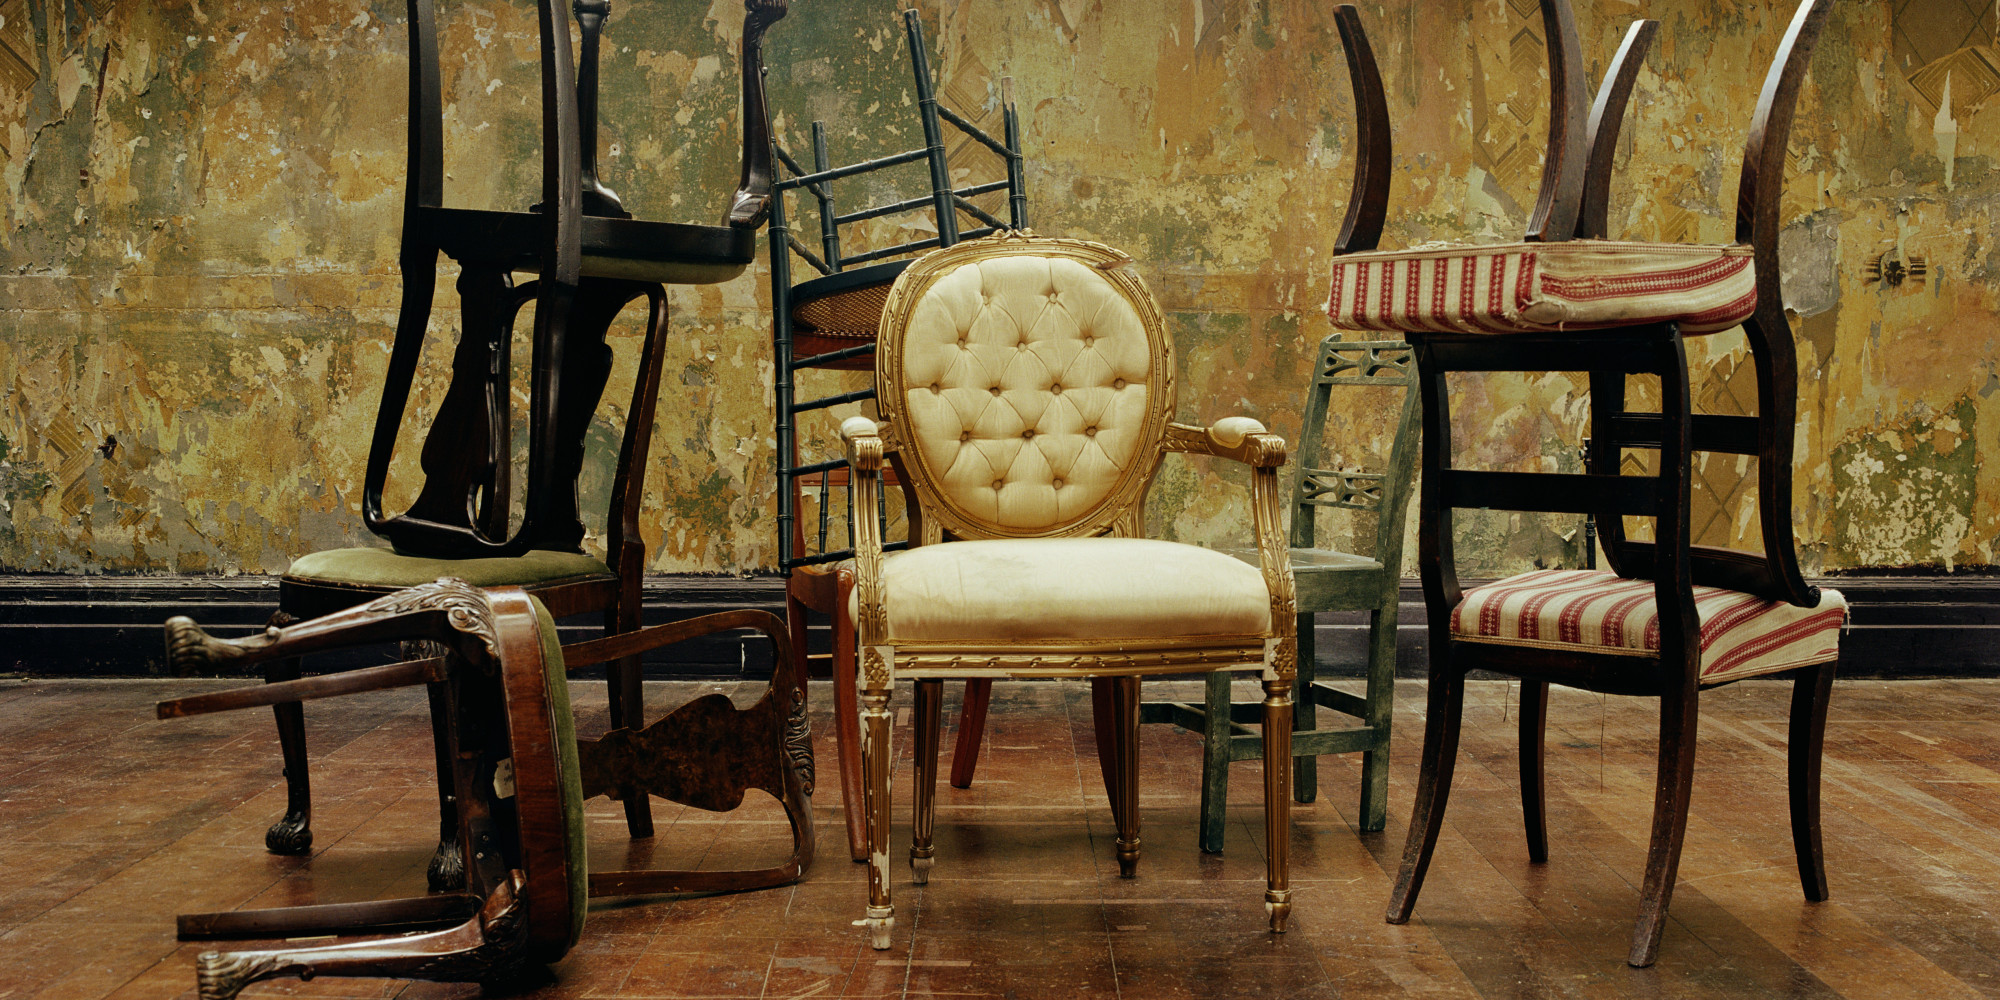 Delightful 10 Best Websites For Vintage Furniture That You Can Browse From Your Living  Room | HuffPost